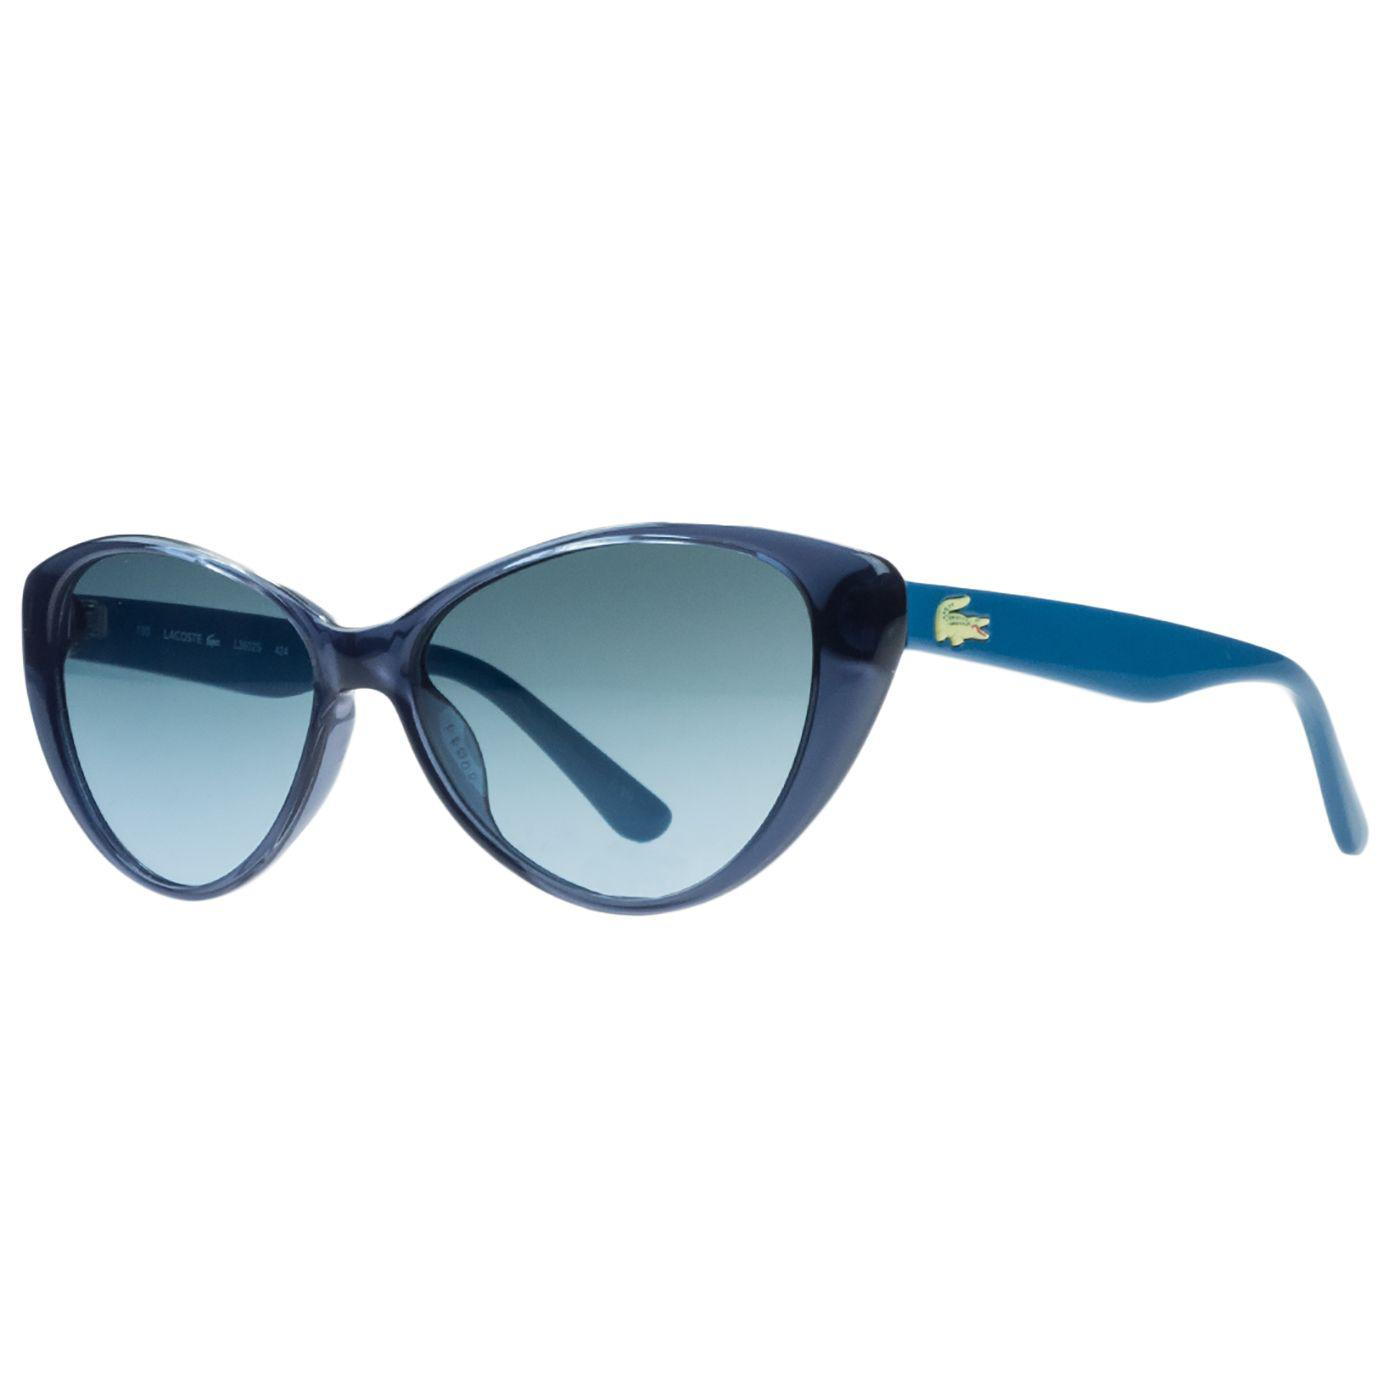 c252c4347b310c Lyst - Lacoste L3602 s 424 Blue Cat Eye Sunglasses in Blue